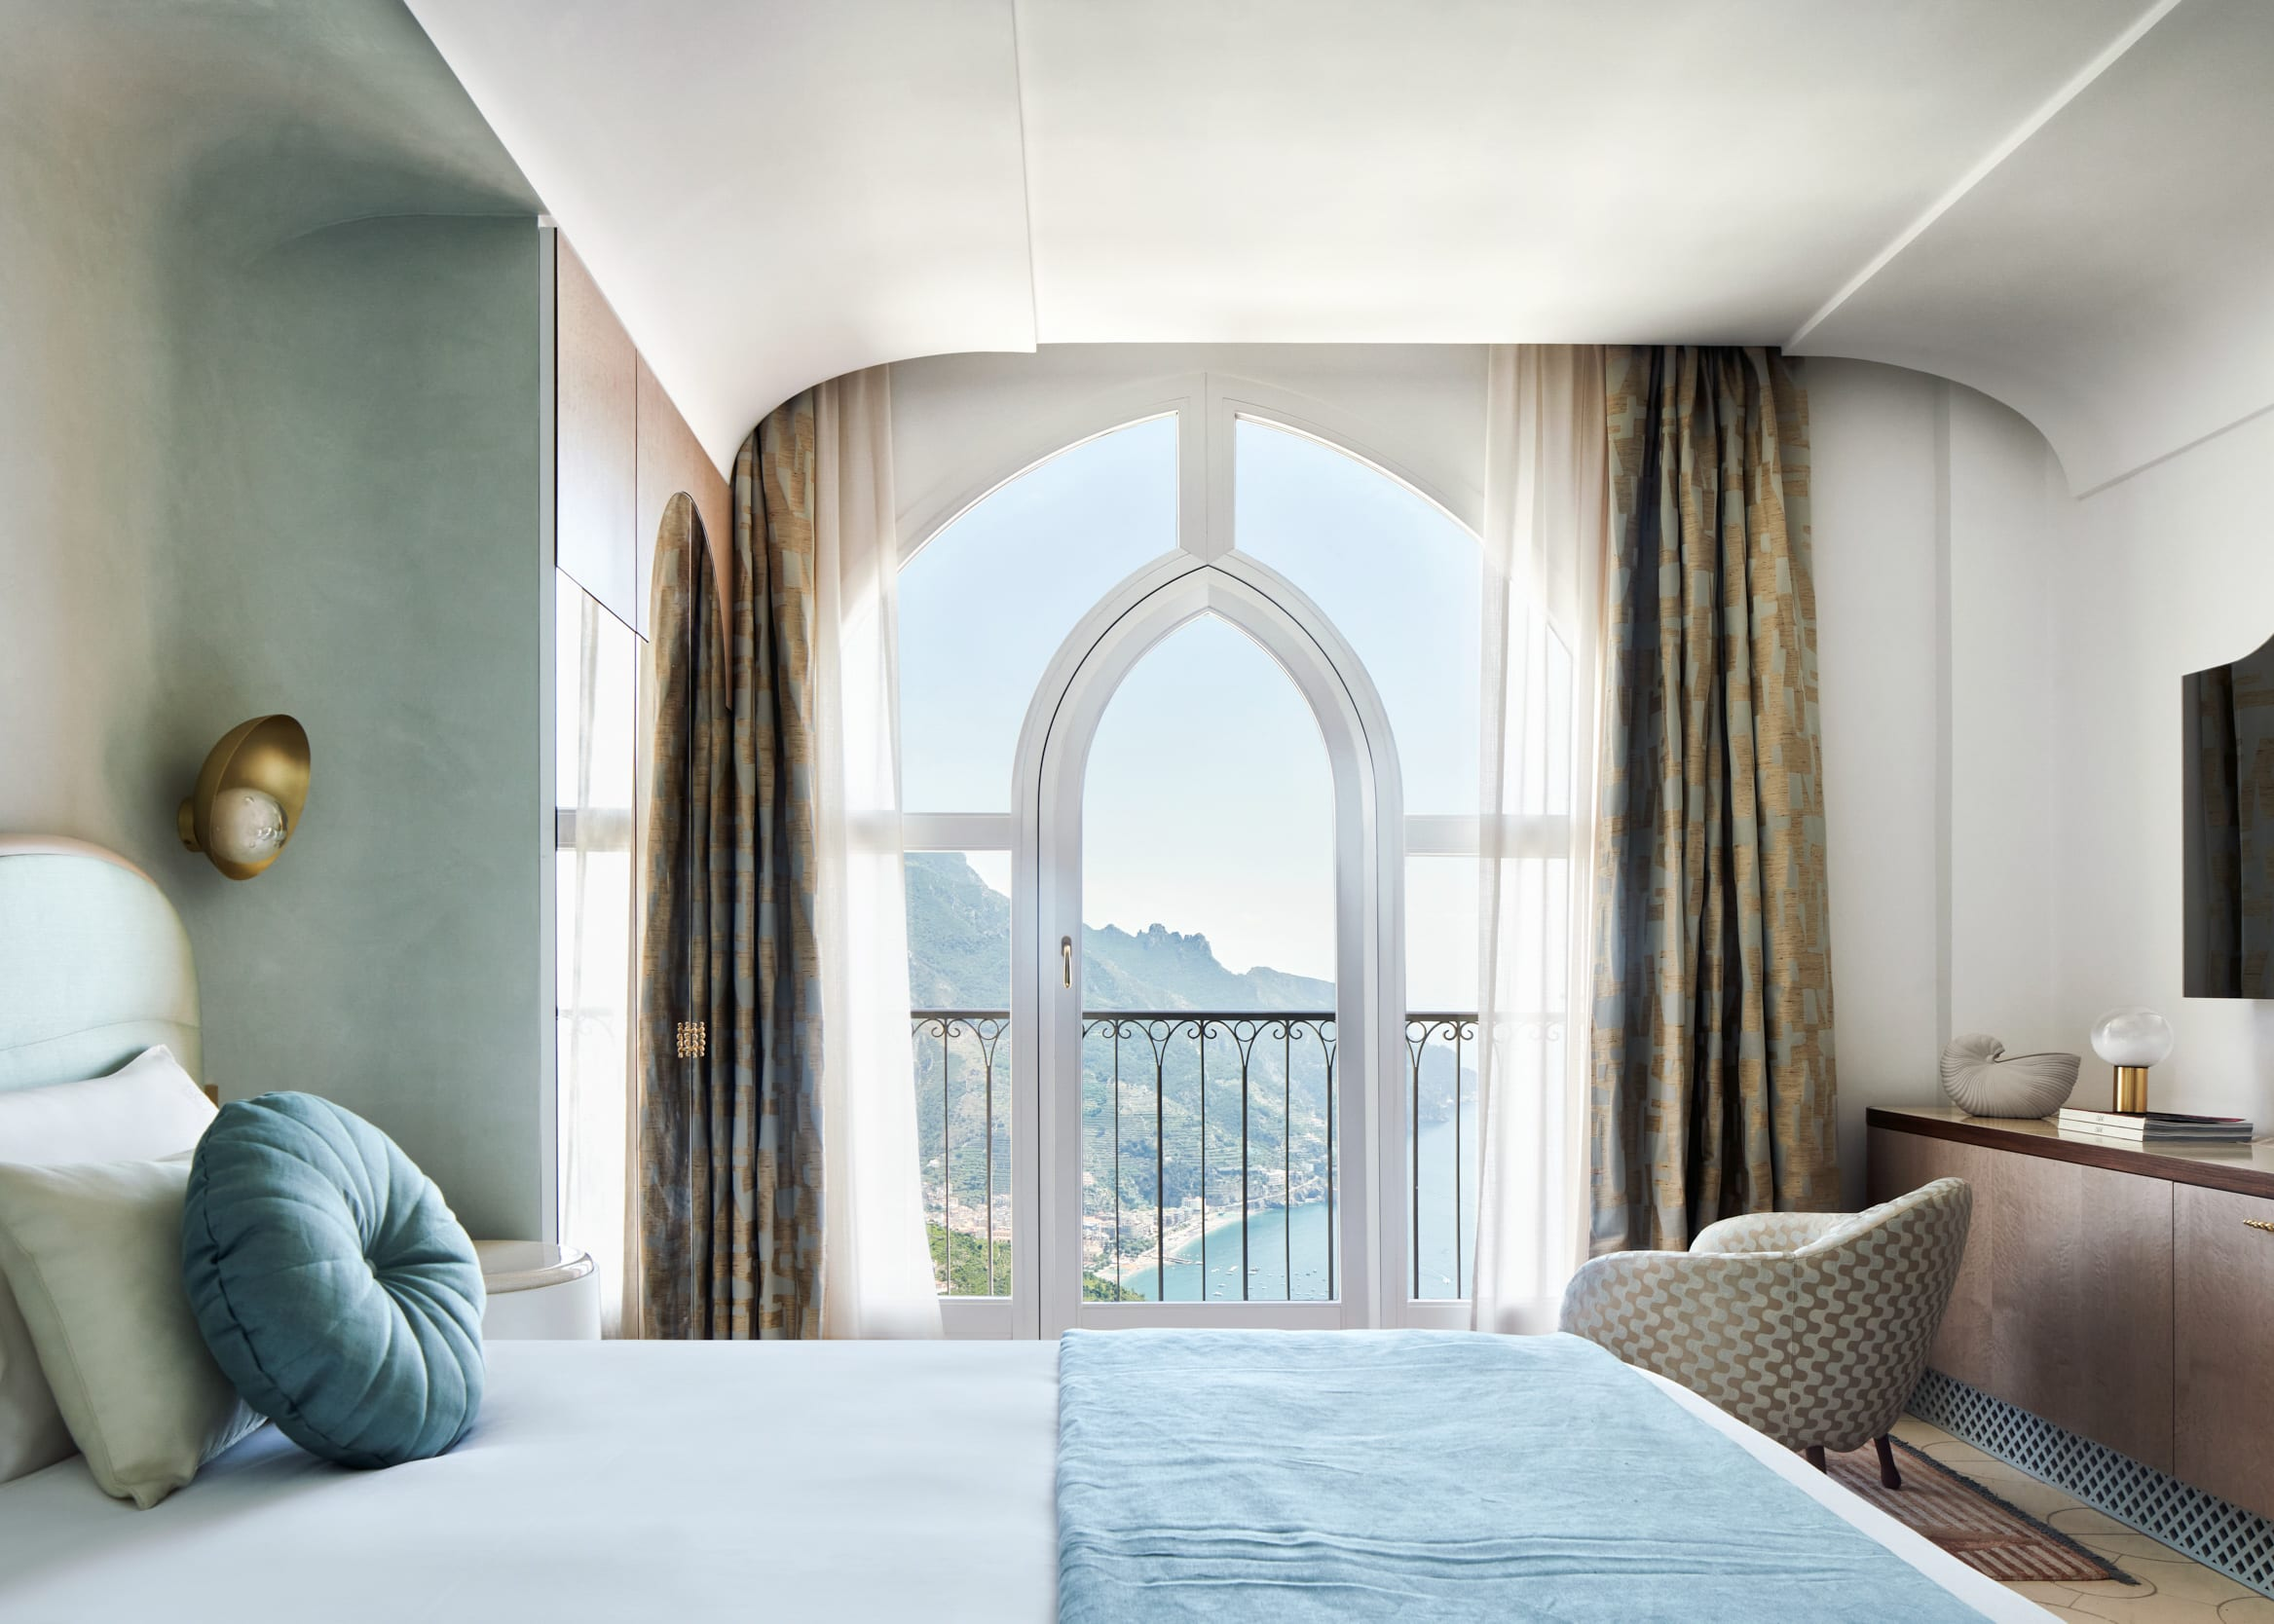 Aquamarine Deluxe sea view Room with French Balcony